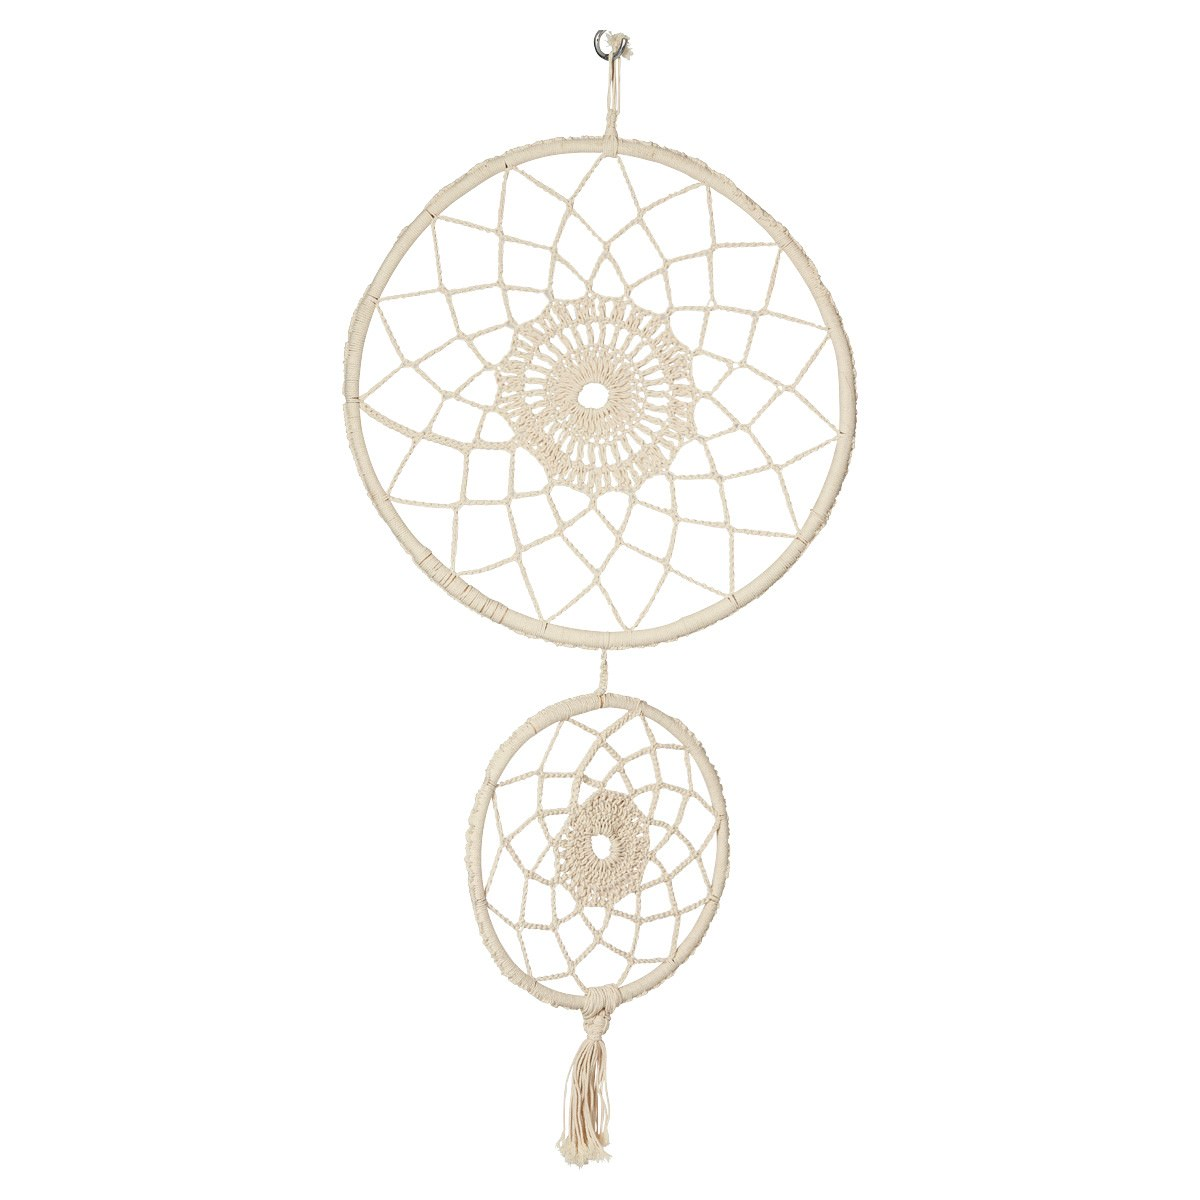 Boho Hand Knitted Cotton Dream Catcher